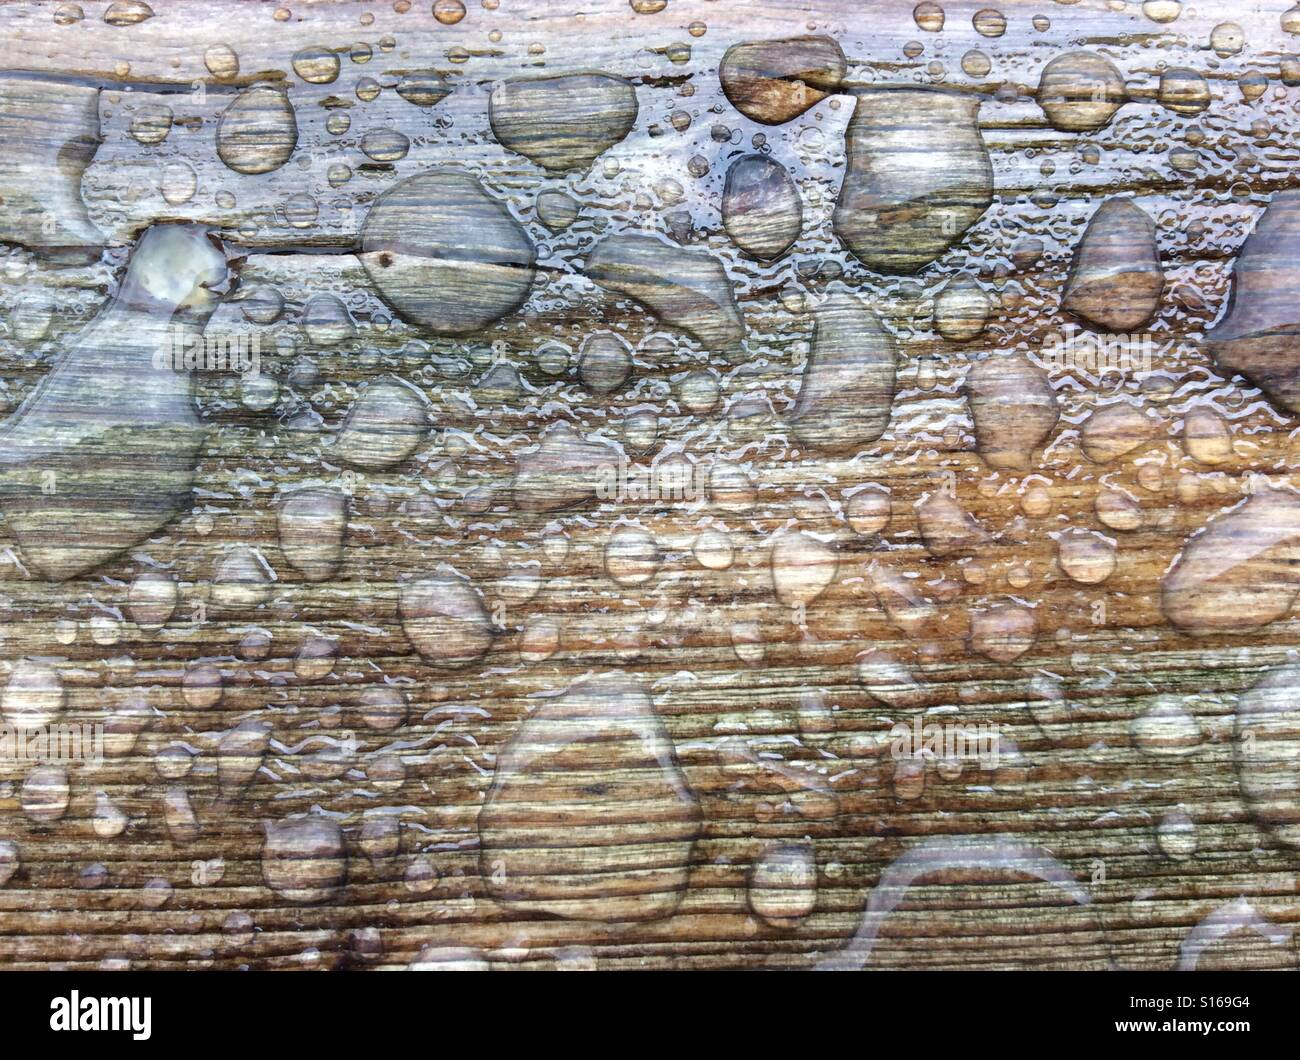 Surface tension of the water forming bubbles on weathered board - Stock Image